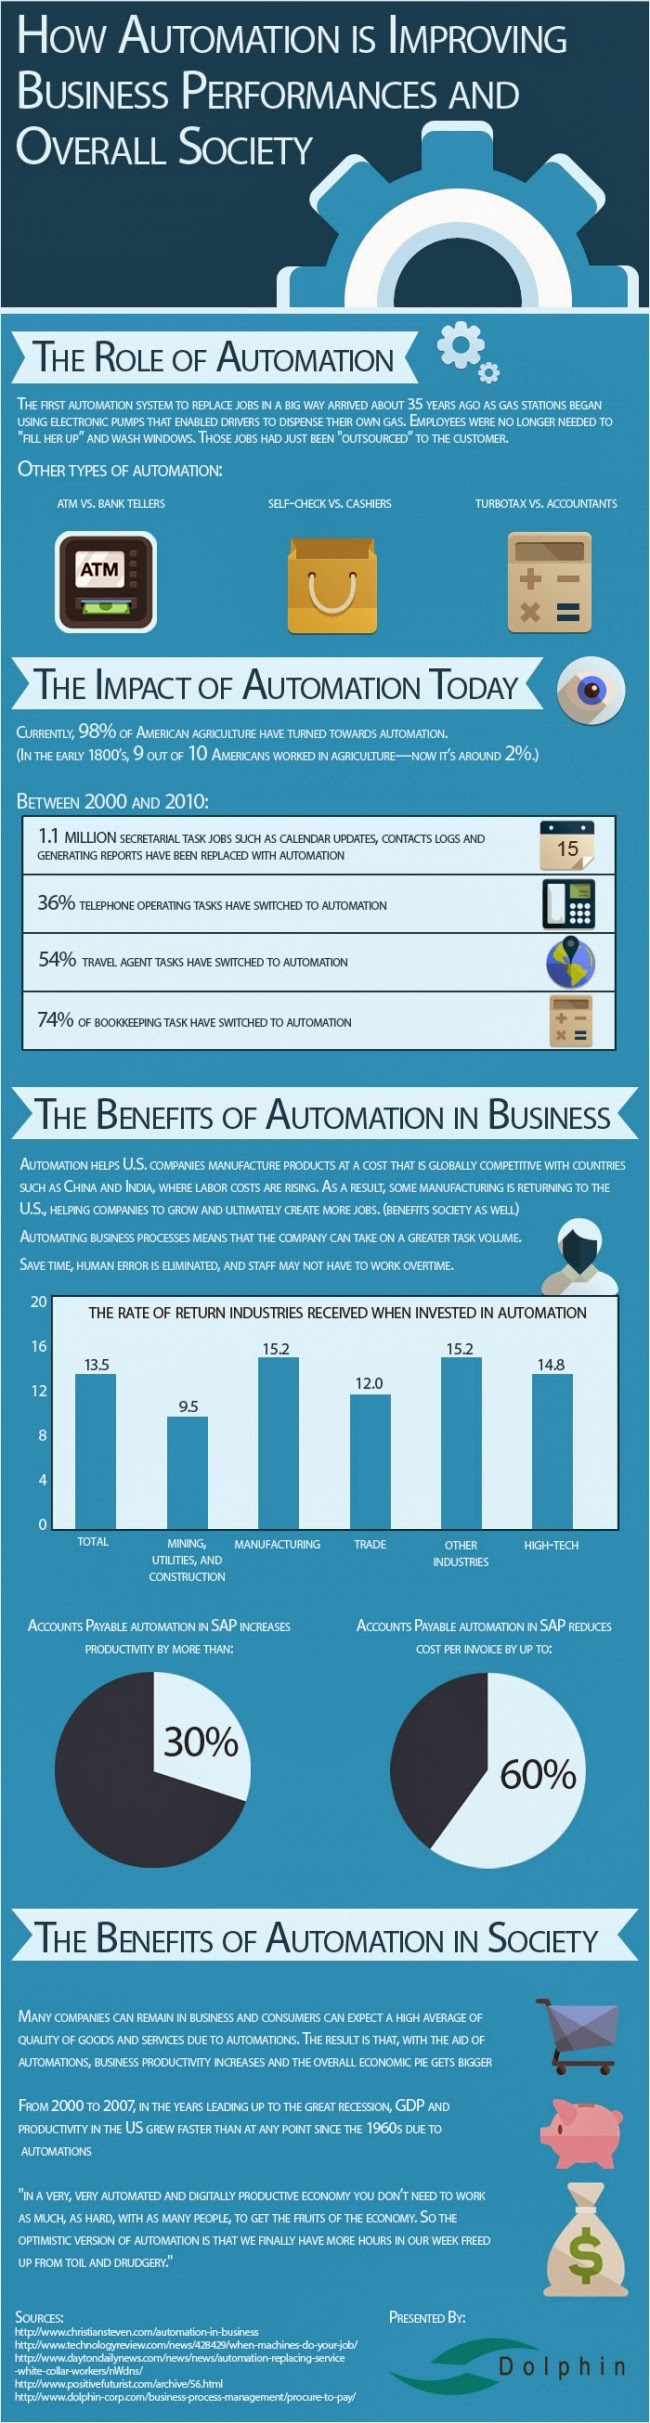 Automation Improves Business Performance